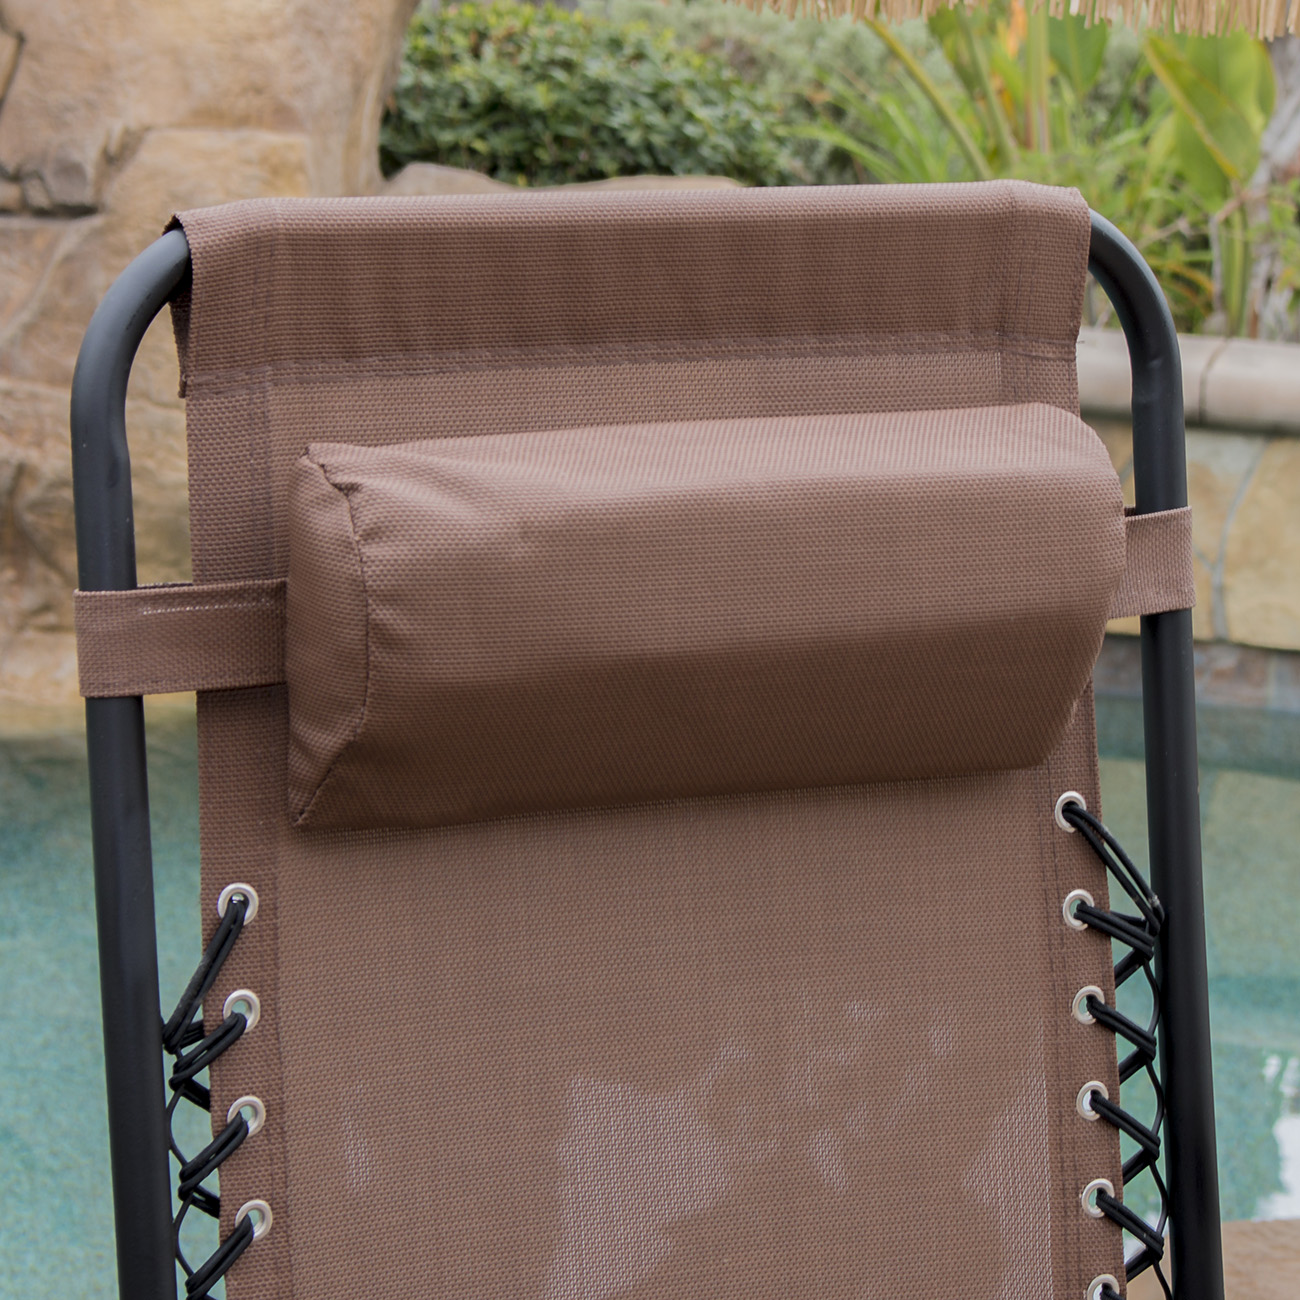 Folding patio lounge chairs - 2 Folding Zero Gravity Reclining Lounge Chairs Utility